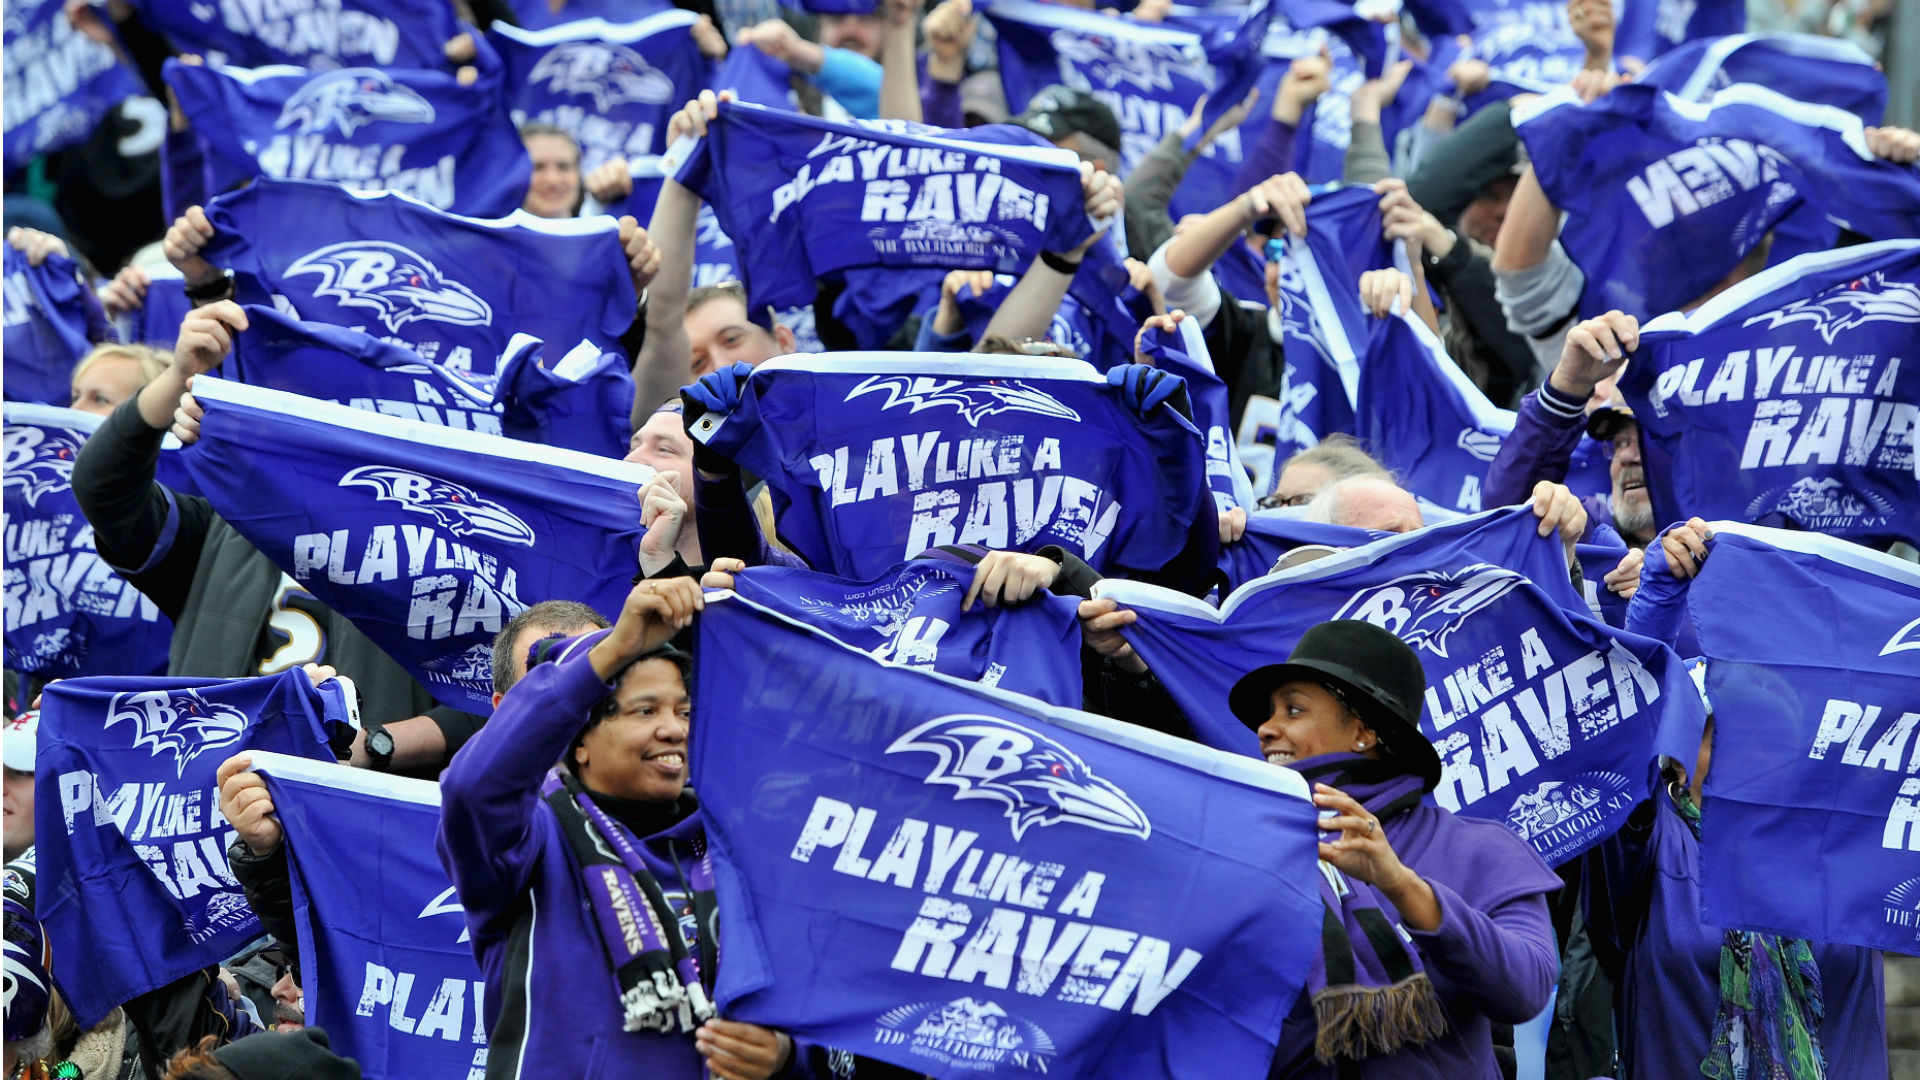 ravens-fans-010615-usnews-getty-ftr